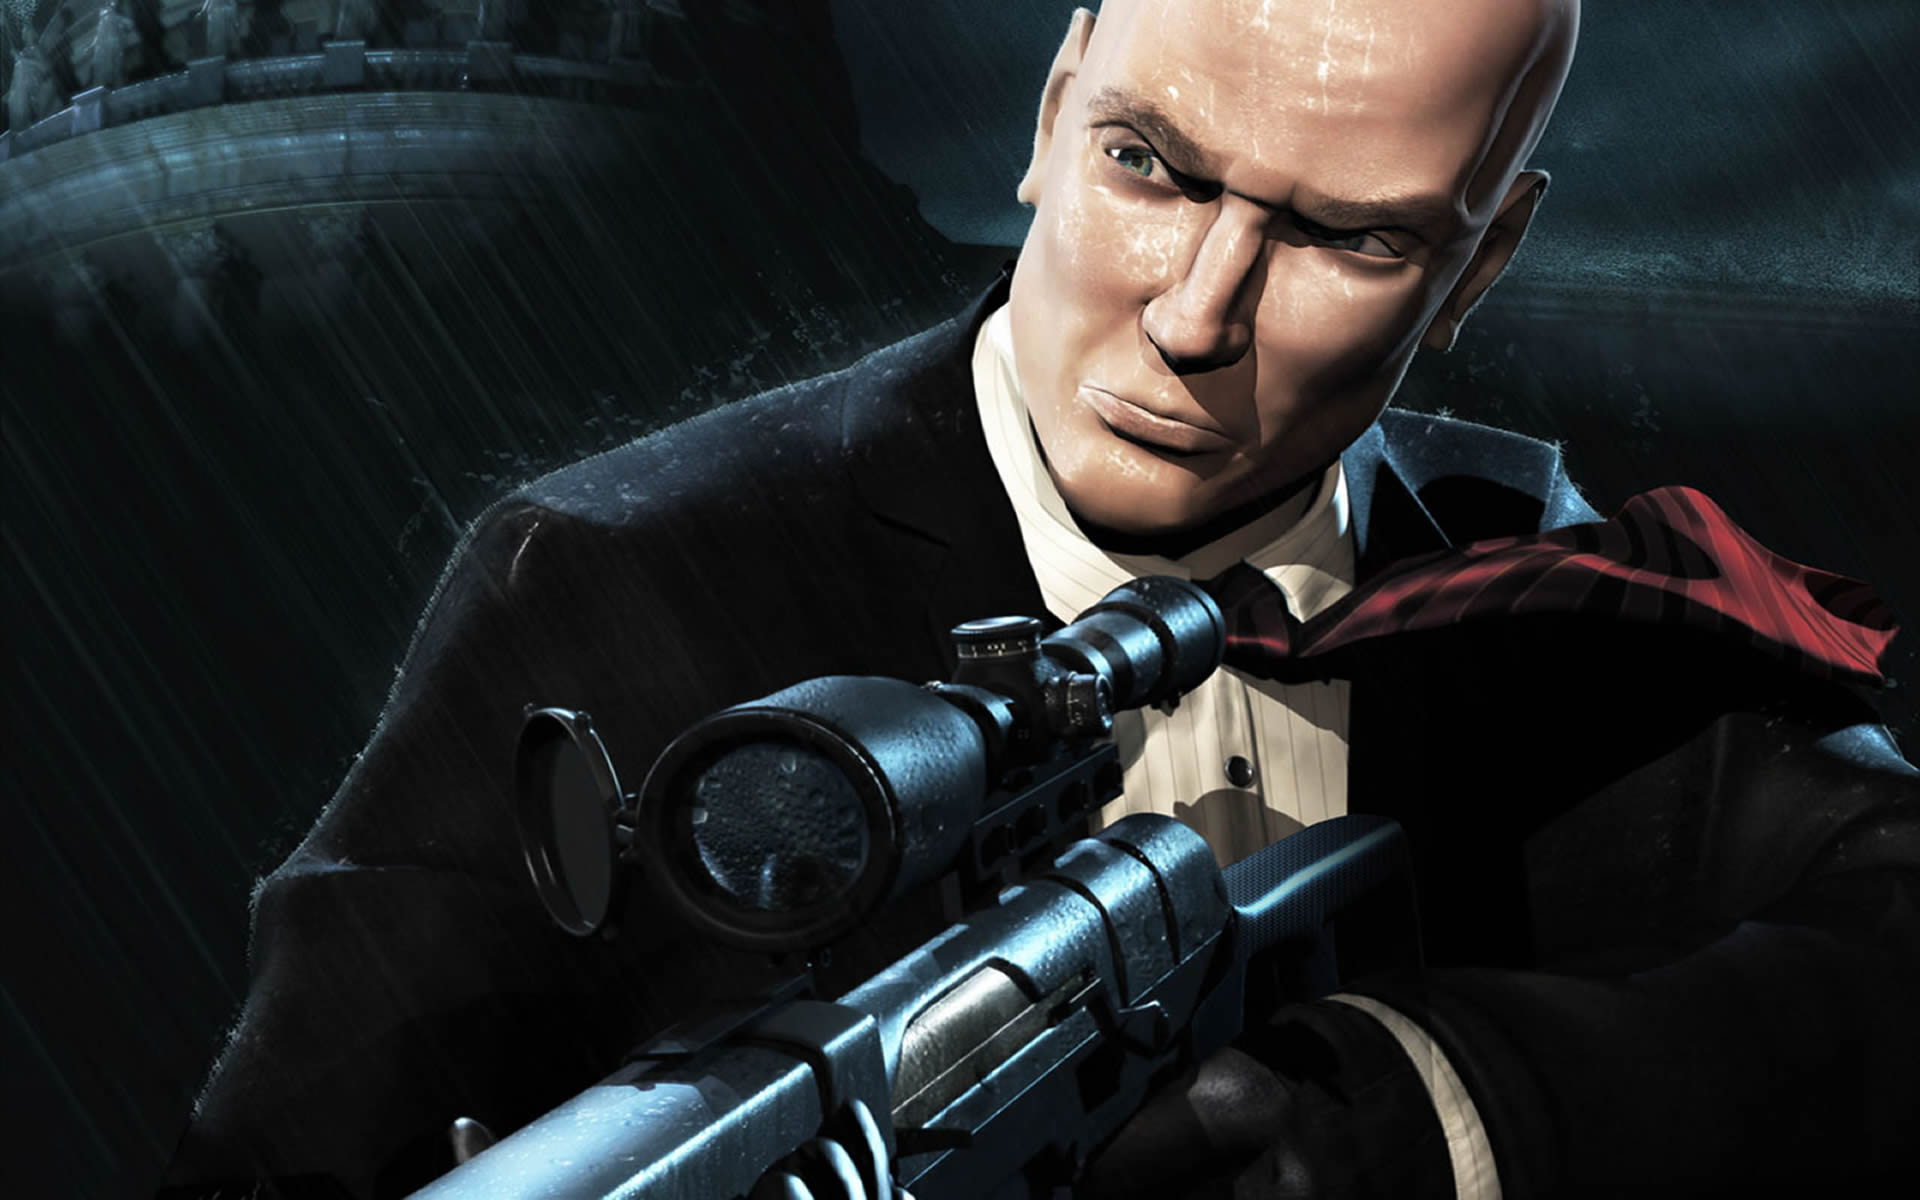 agent 47 with sniper rifle - hitman 2 wallpaper